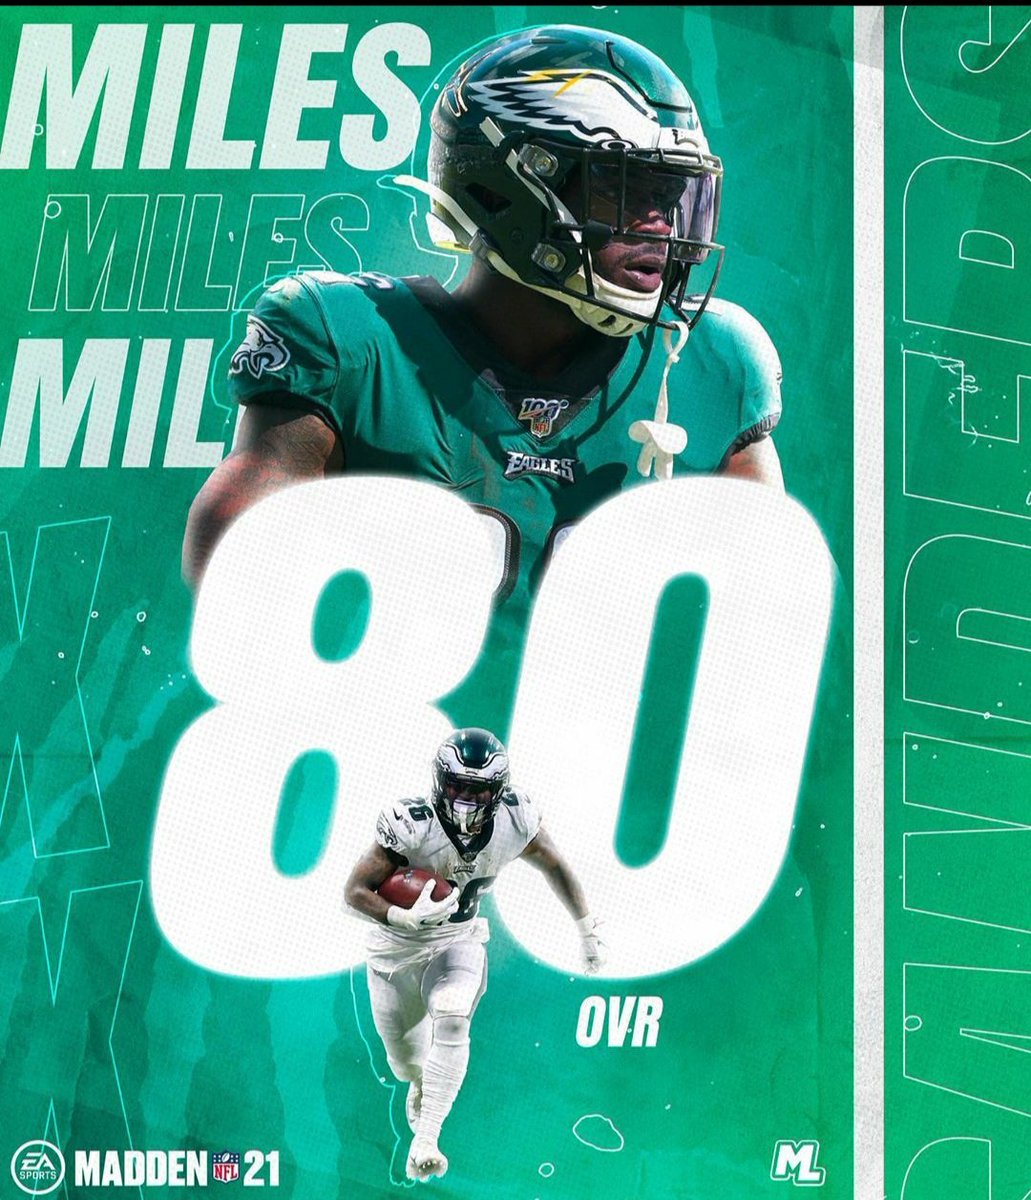 Miles Sanders gets an overall grade of 80... I think that's a little low but I won't complain too much... #FlyEaglesFly <br>http://pic.twitter.com/UqJyGRXwRH